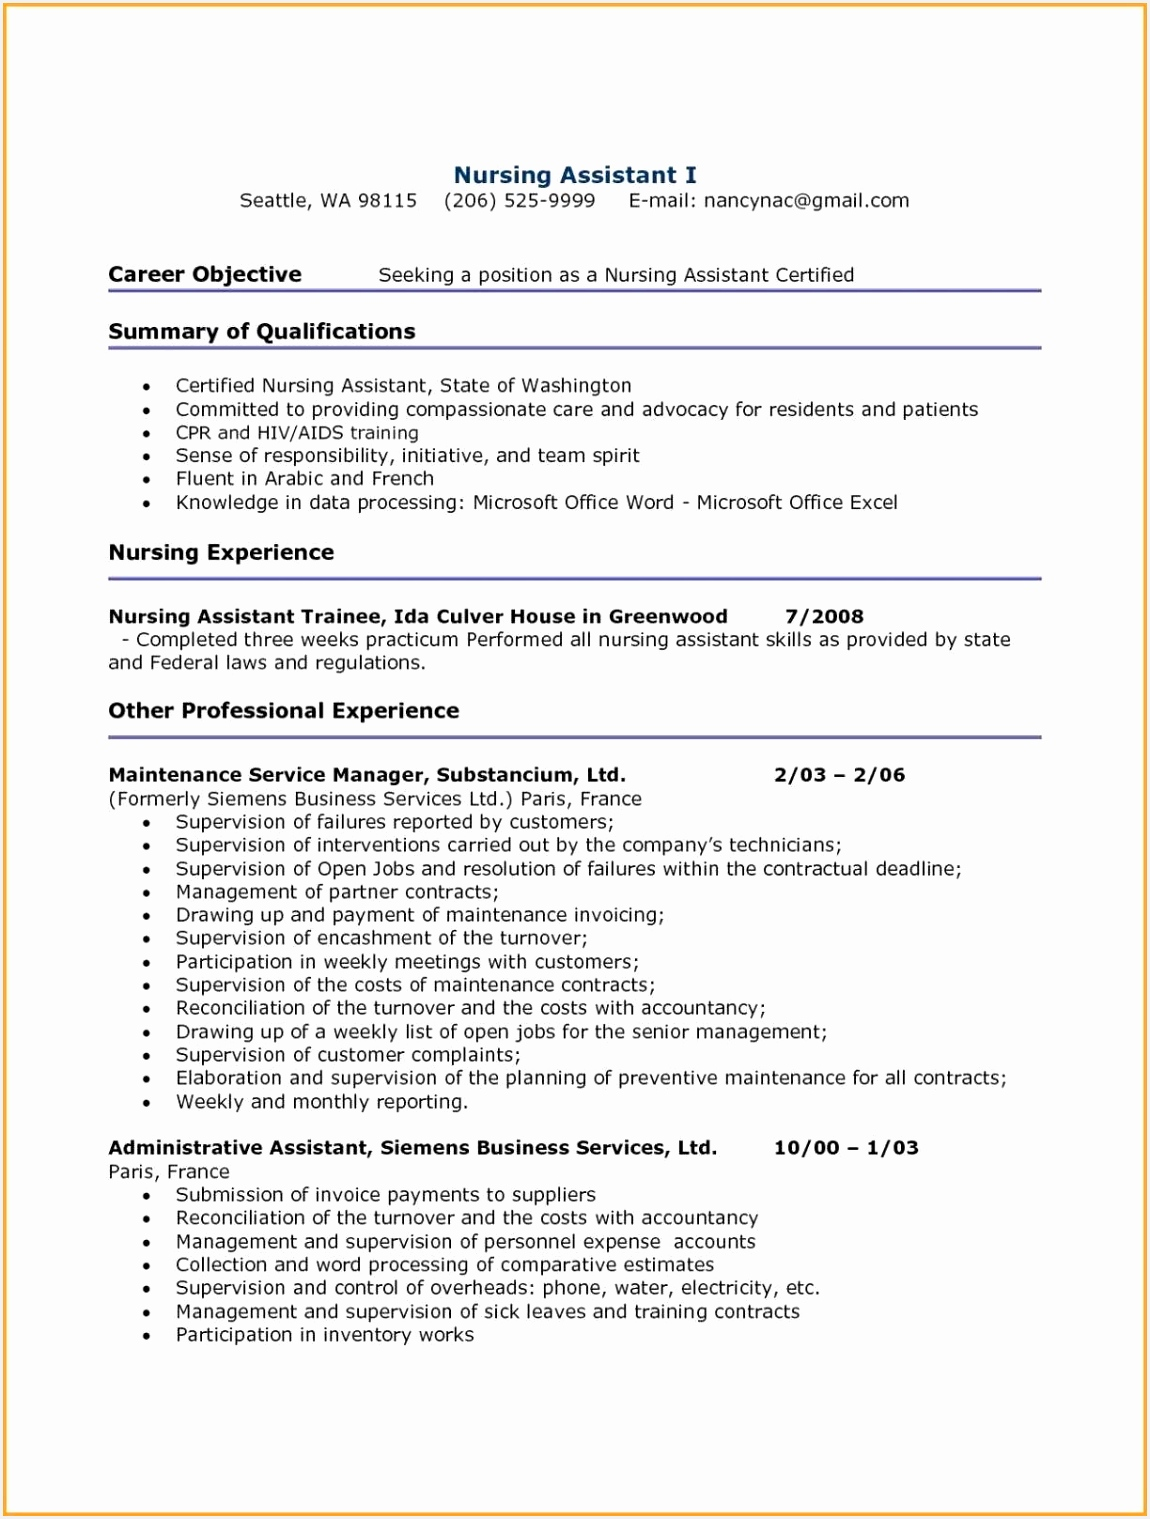 Microsoft Trainer Sample Resume Rduqf Awesome Cover Letter Email format Lovely Email Cover Letters New Resume Of 7 Microsoft Trainer Sample Resume